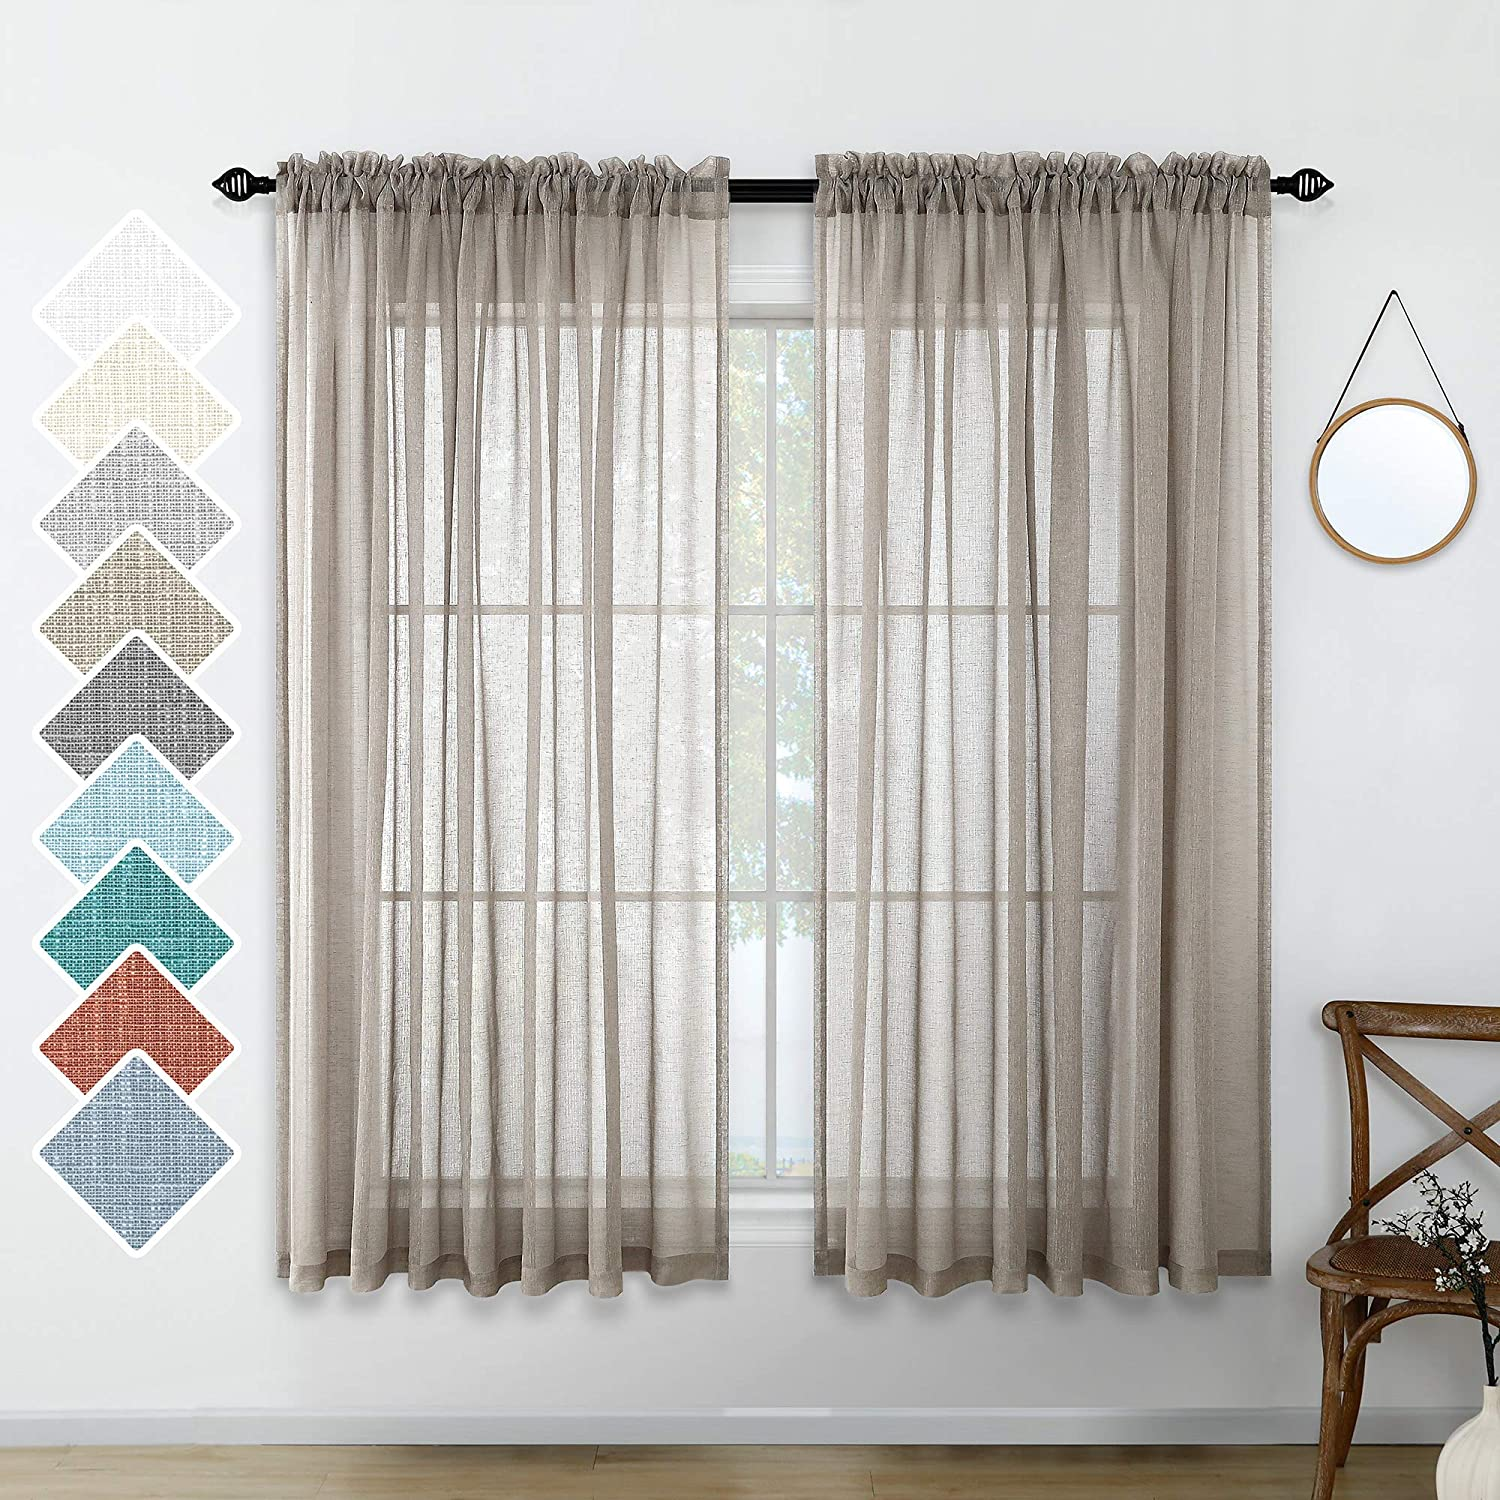 Taupe Sheer Curtains 45 Inches Long for Bedroom 2 Panels Rod Pocket Elegant Rustic Farmhouse Curtains for Kitchen Window Semi Sheer Faux Linen Drapes for Bathroom Laundry Beach Decor 52x45 Inch Length